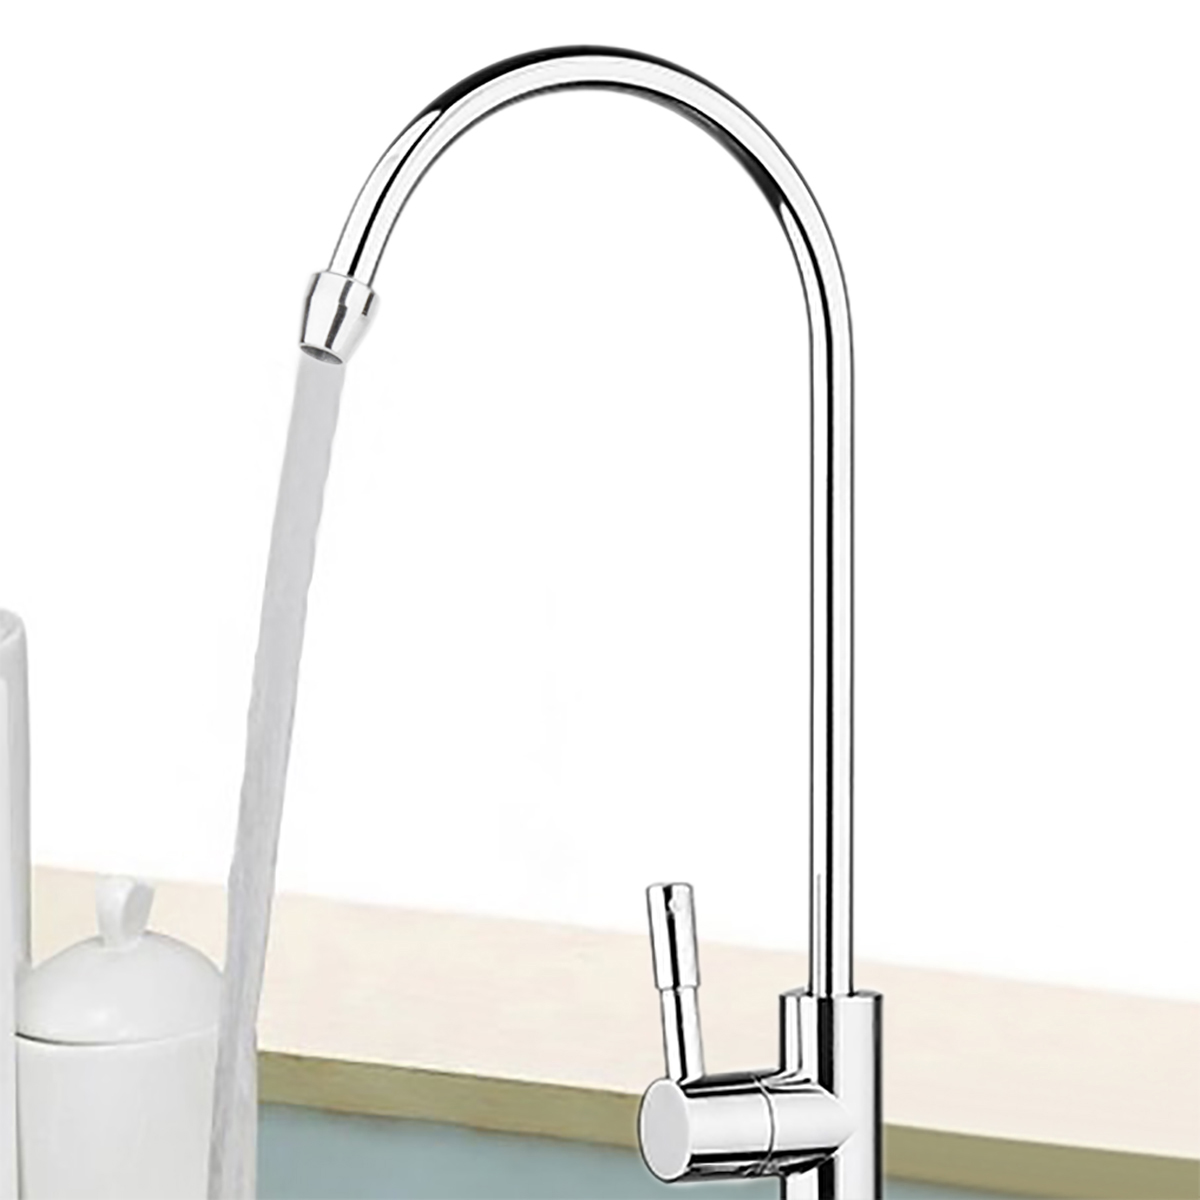 Stainless Steel Drinking RO Water Filter Faucet 1/4